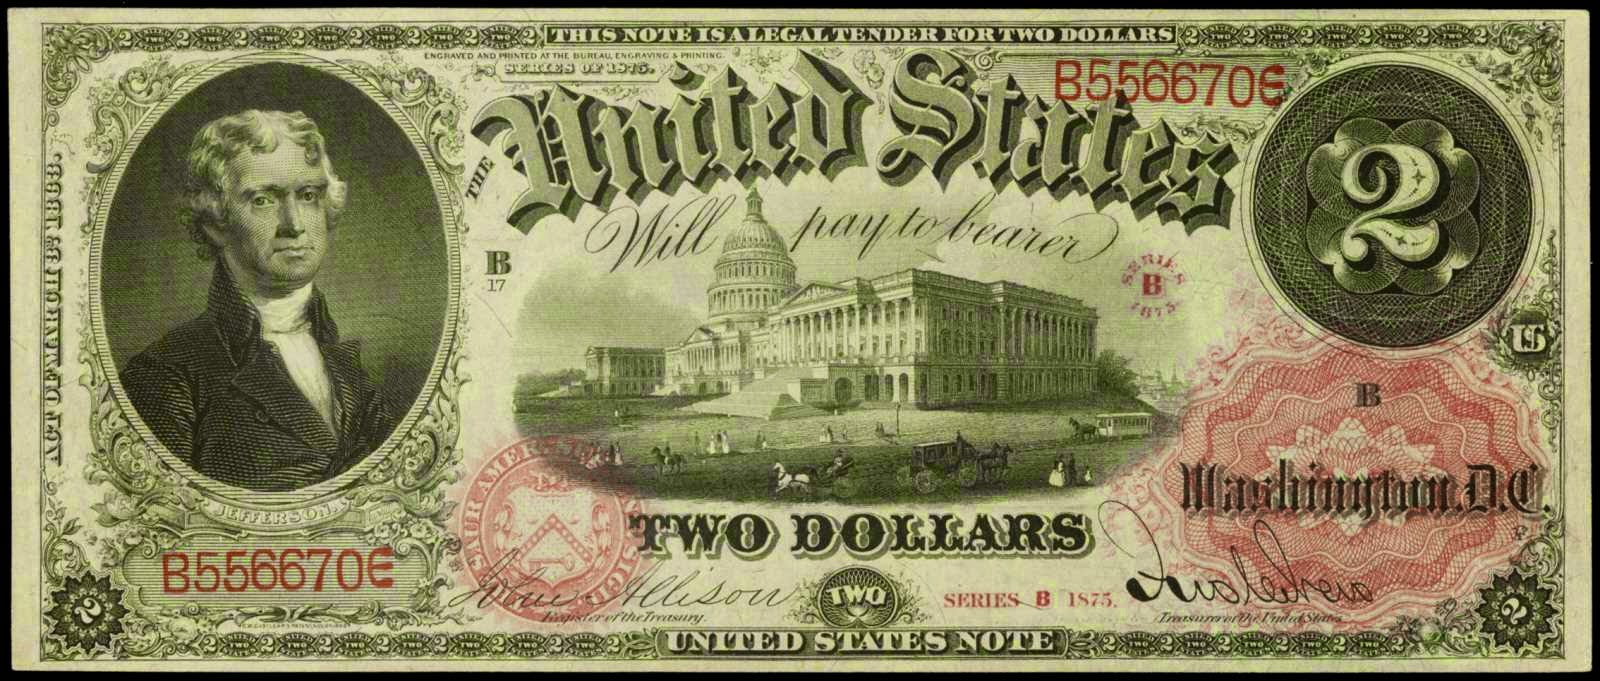 United States Notes 1875 Two Dollar Legal Tender Note Thomas Jefferson